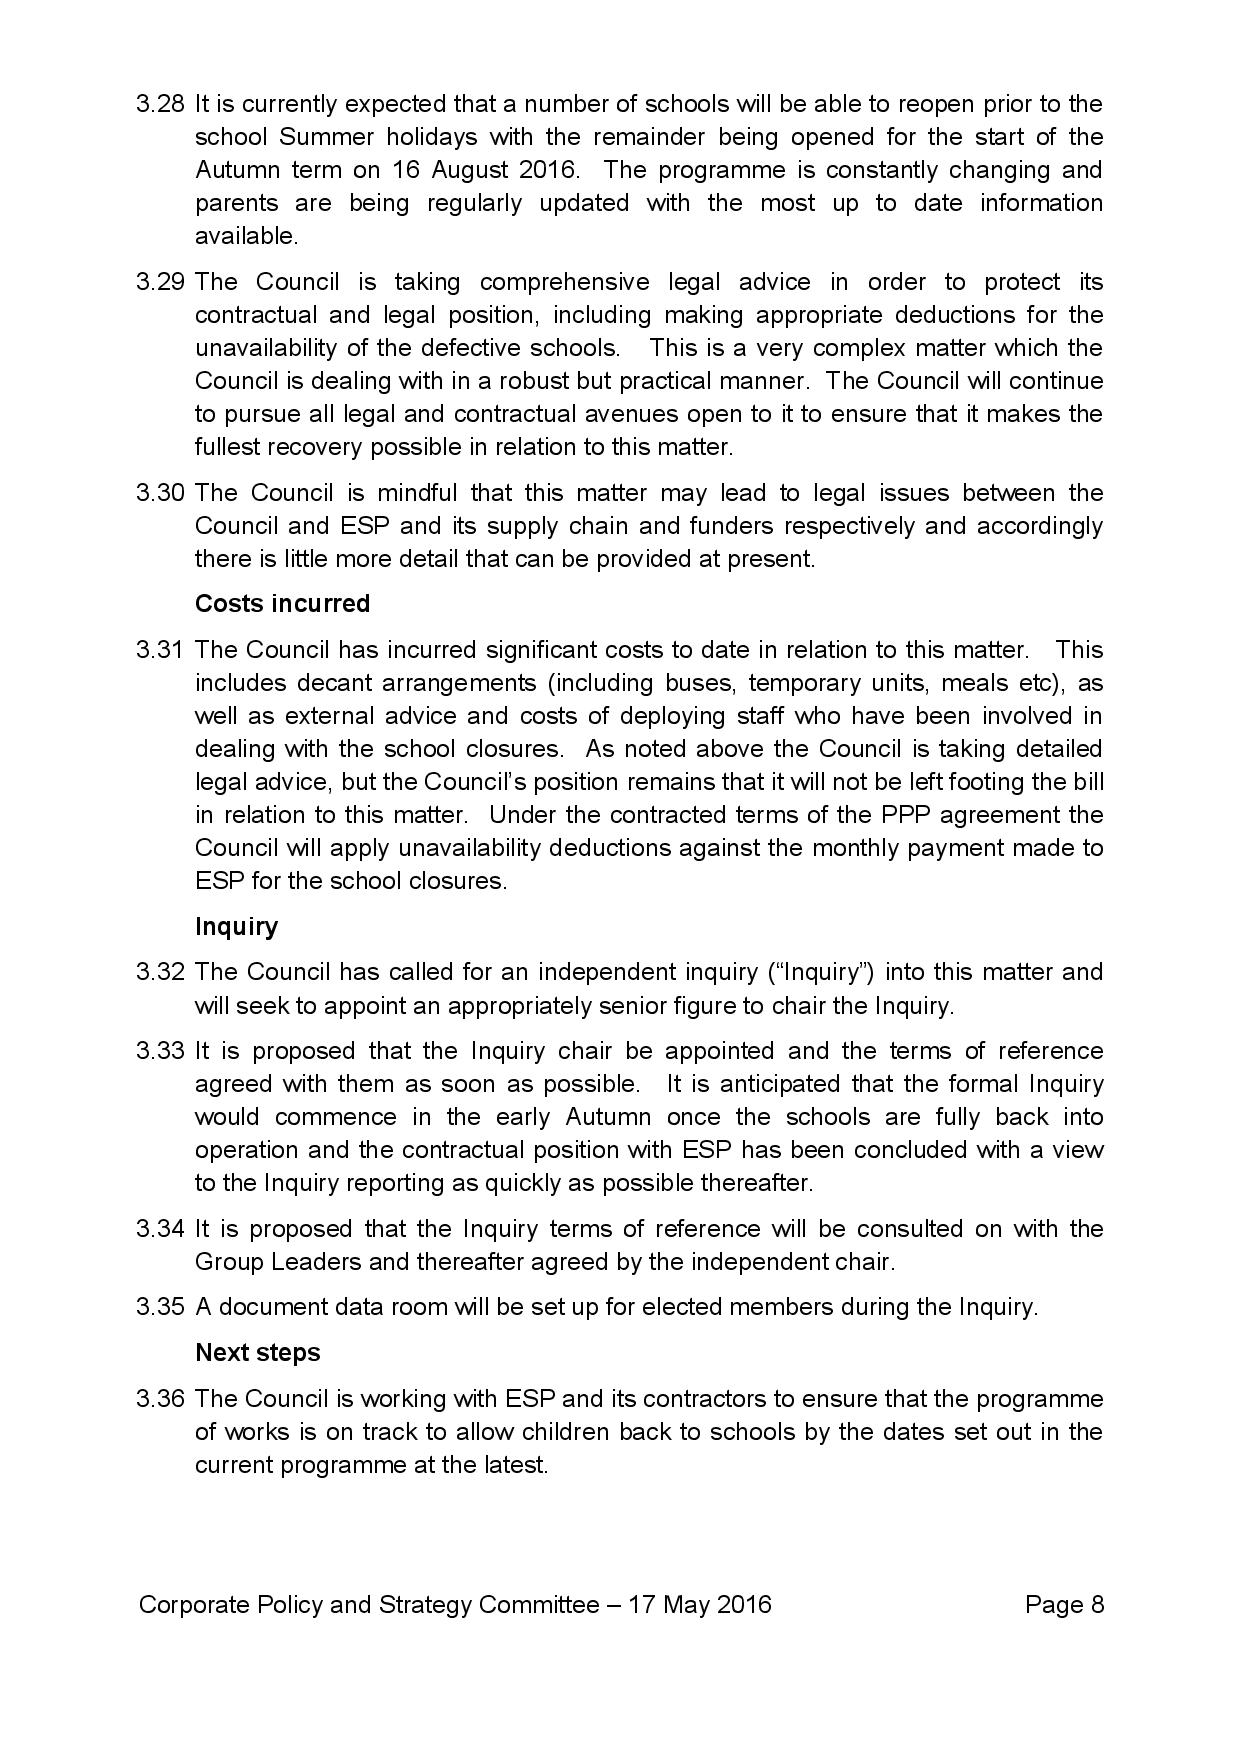 PPP1_Schools_CPS_Report_090516_v14_final-page-008.jpg